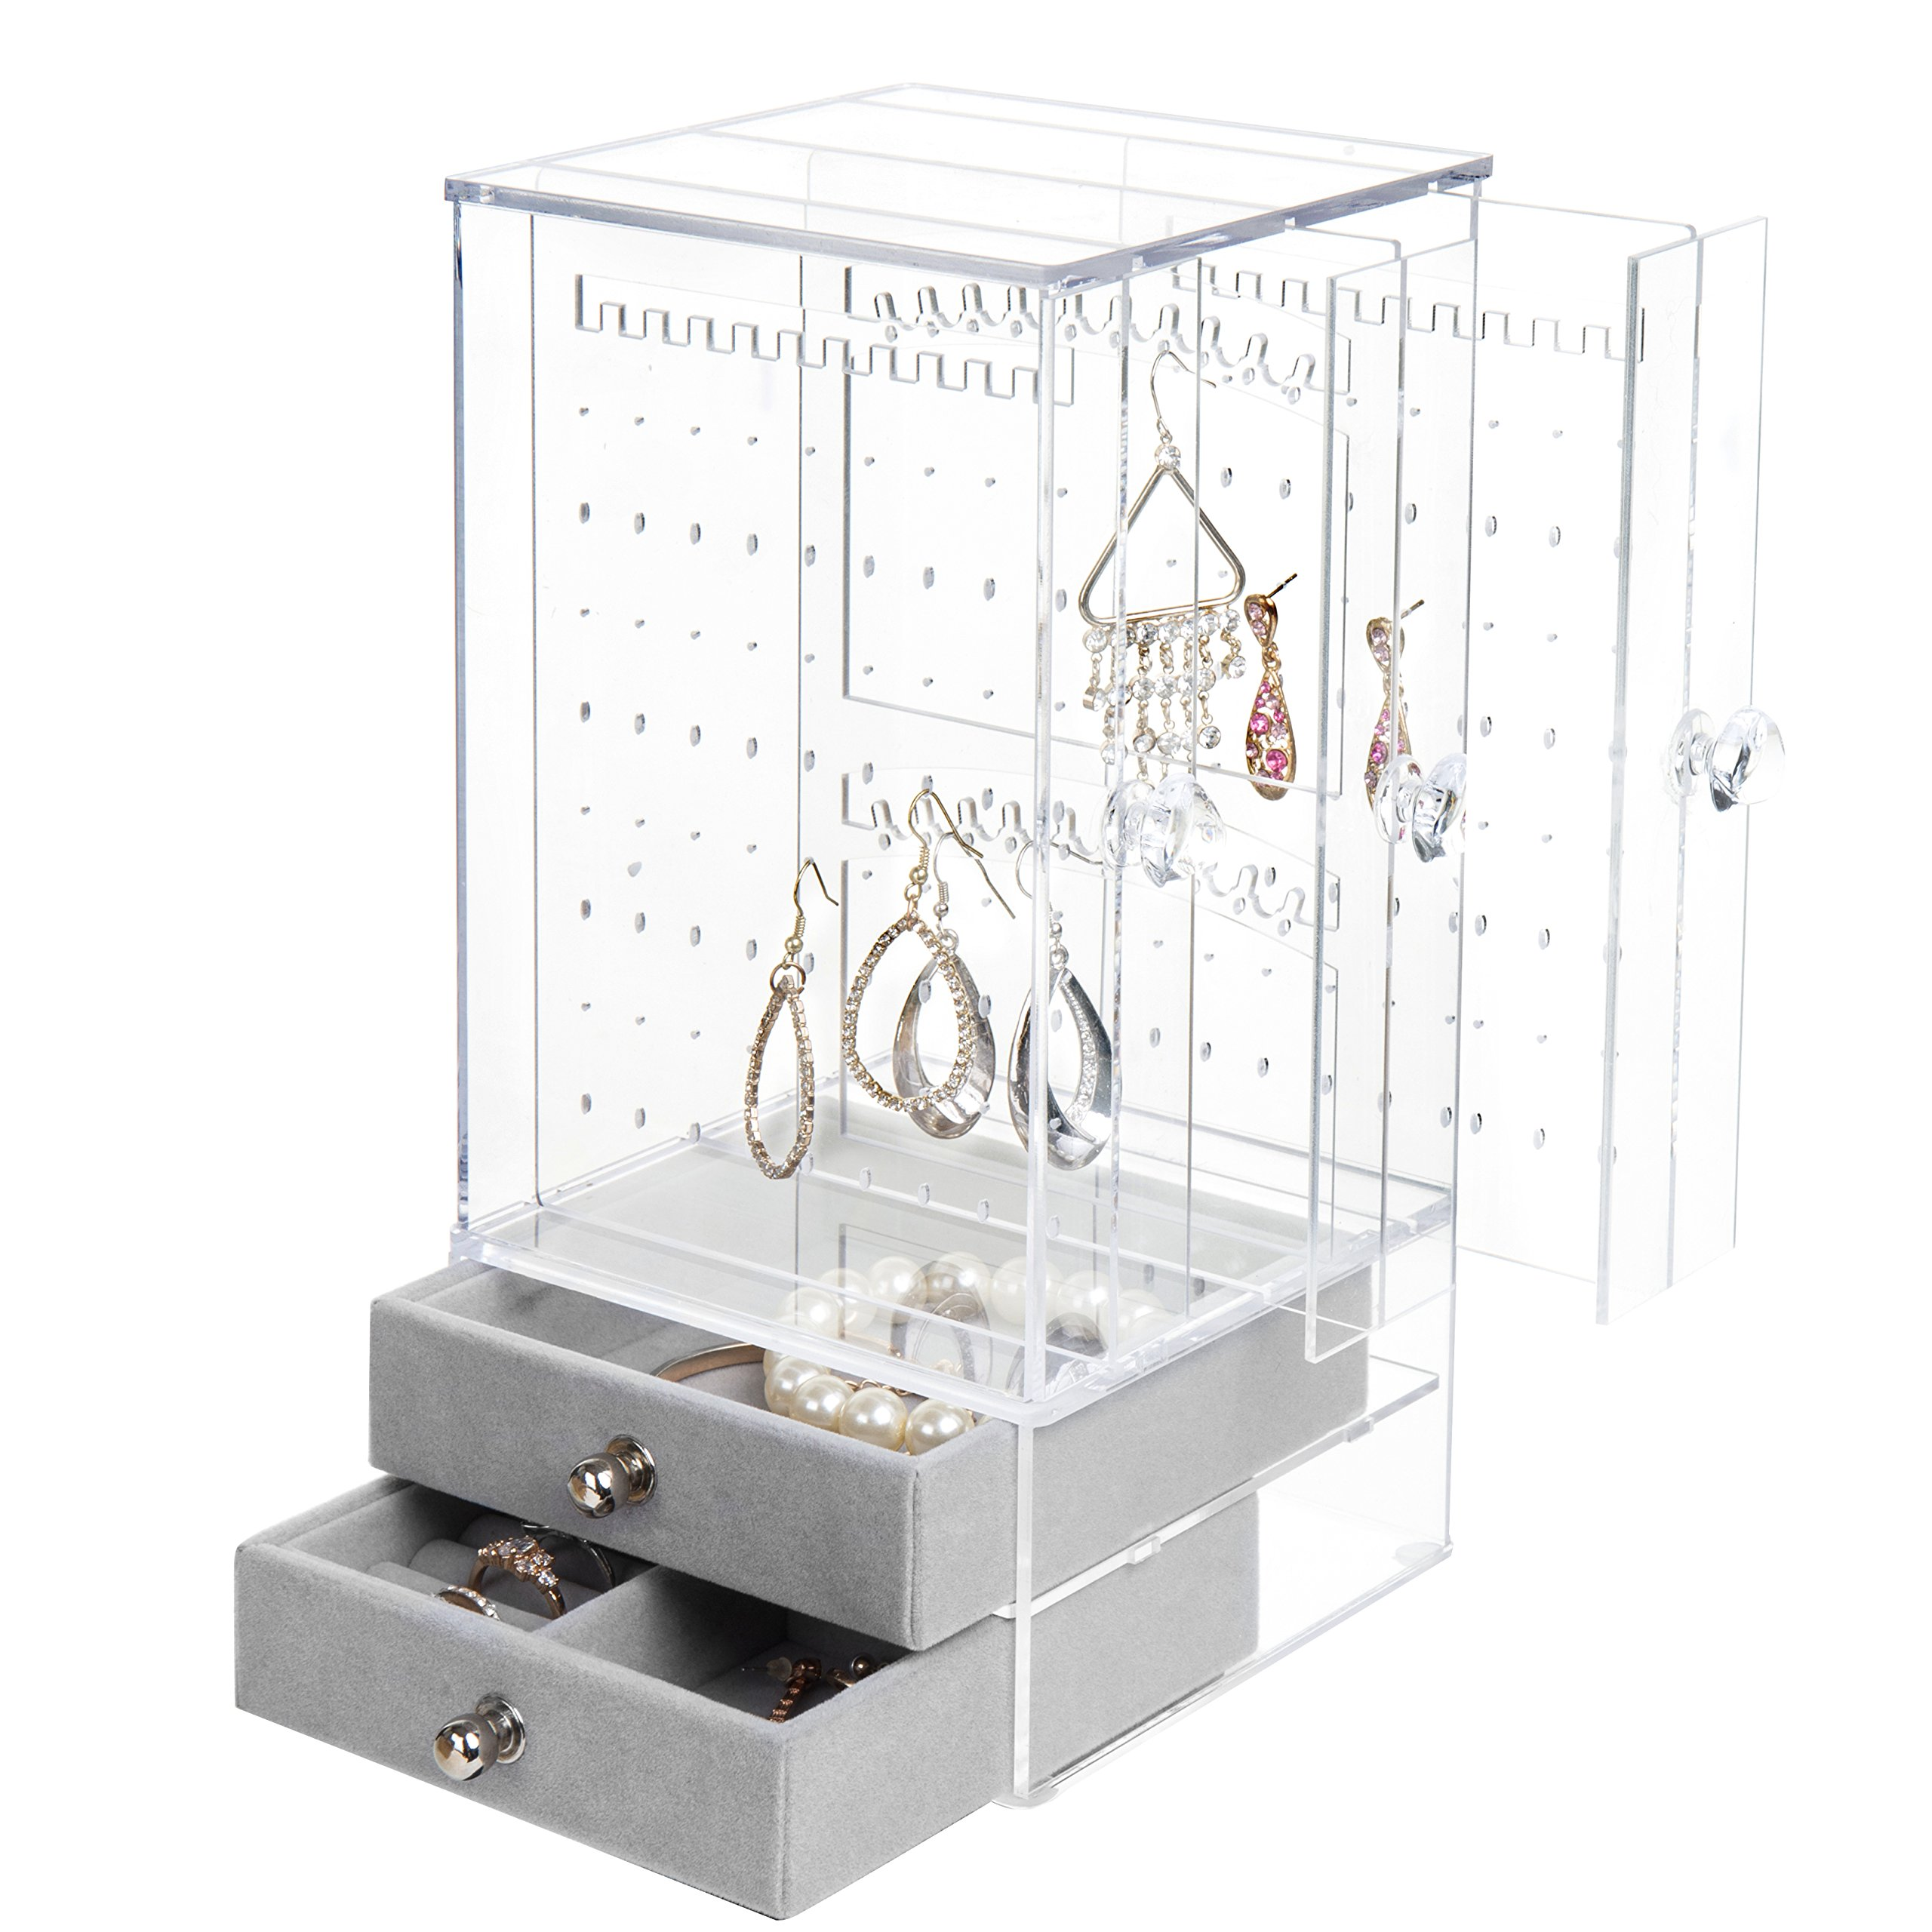 MyGift Clear Acrylic Earring Display Jewelry Case Necklace and Bracelet Organizer with 2 Plush-Lined Drawers.